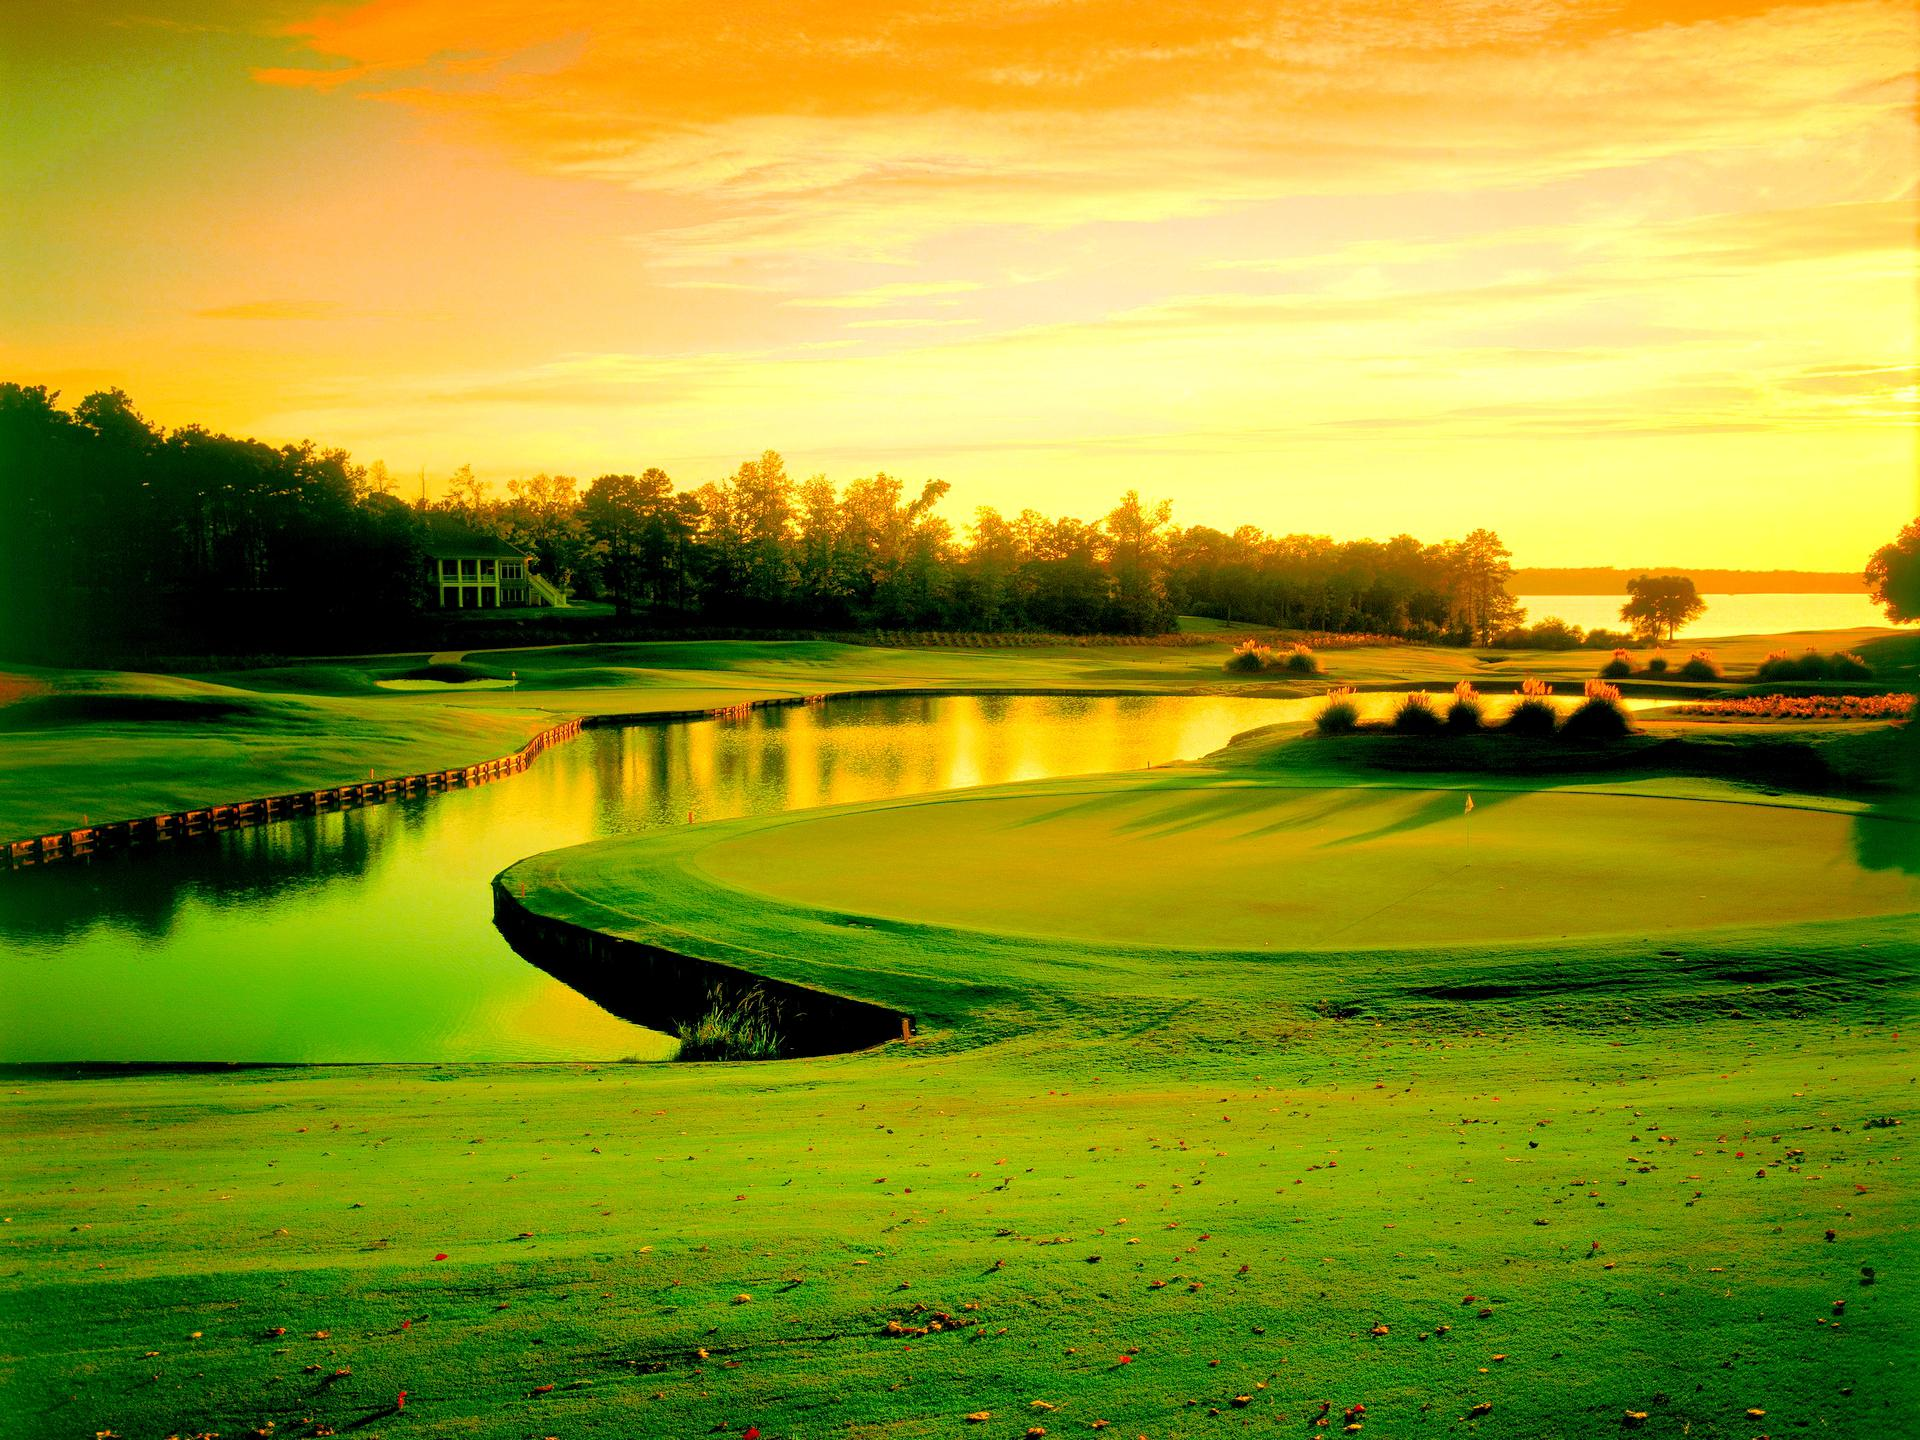 Golf course   156278   High Quality and Resolution Wallpapers on 1920x1440